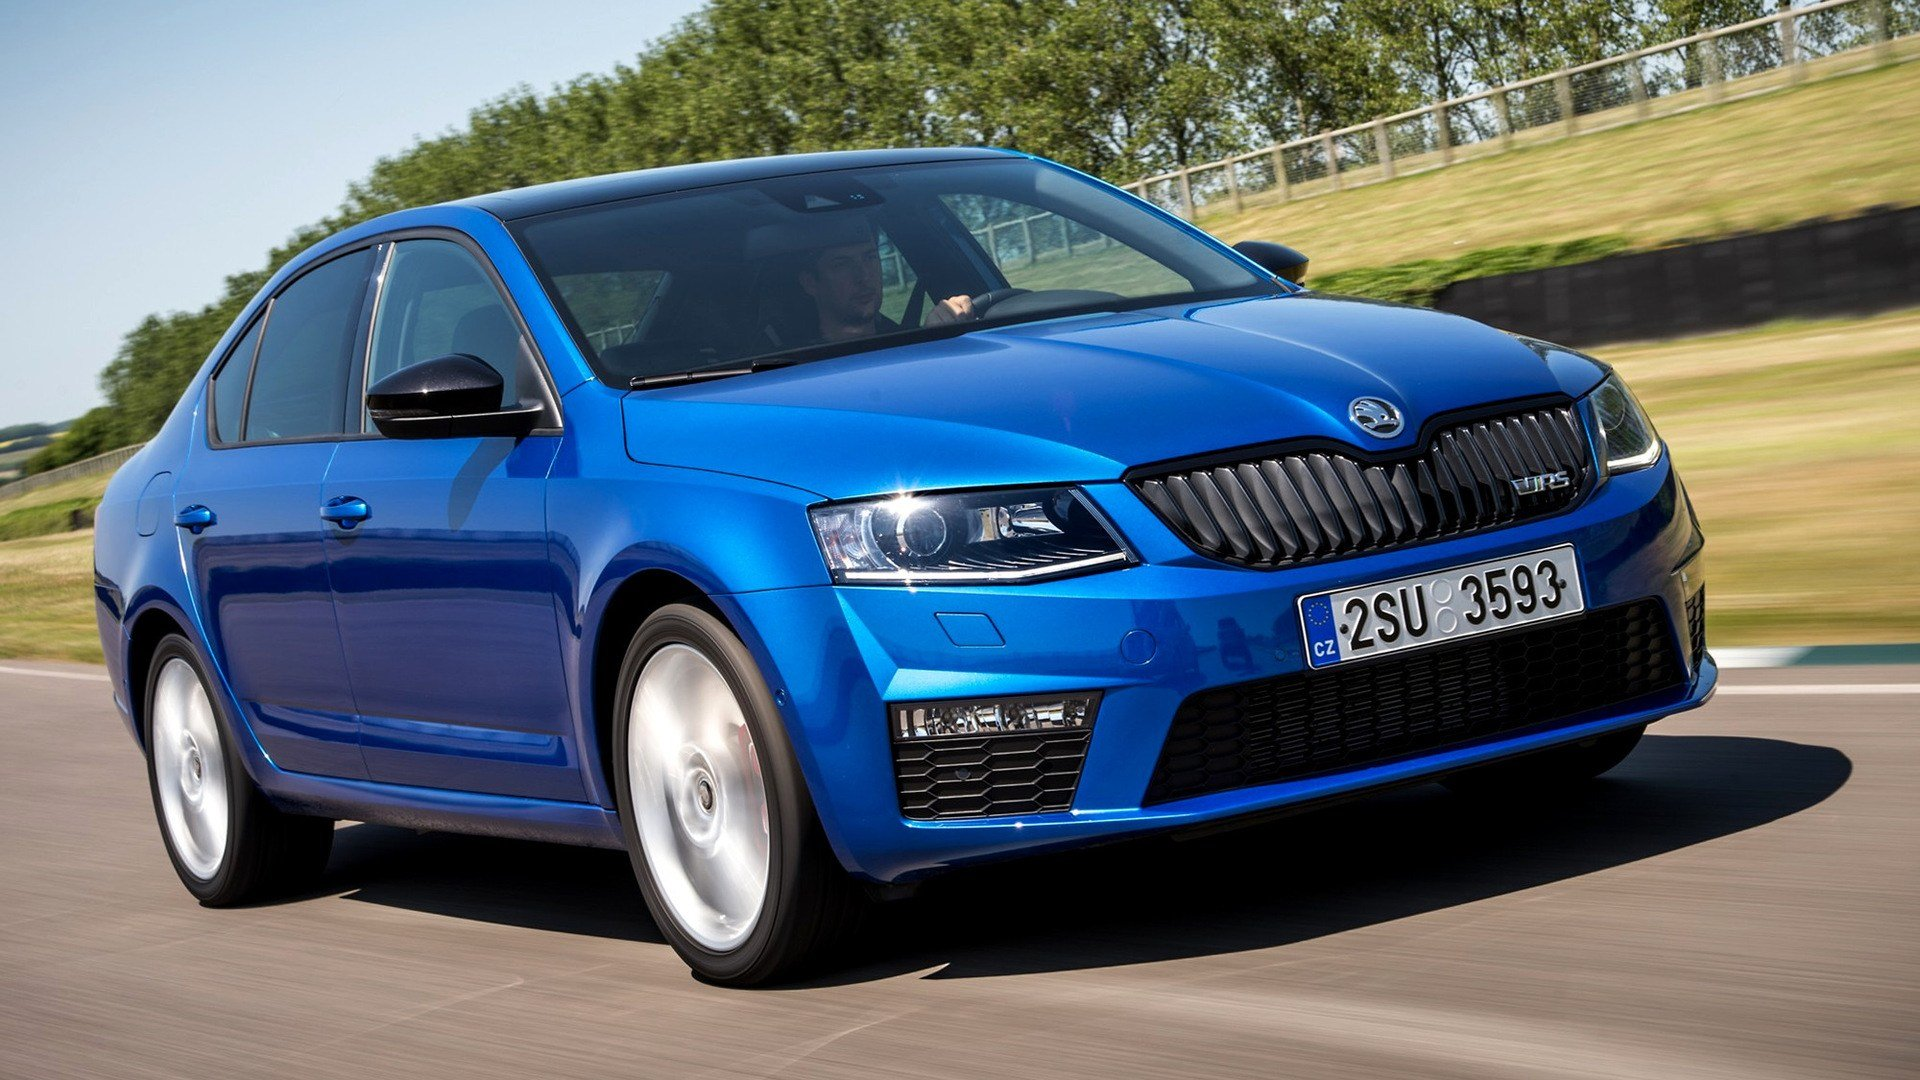 Latest 2013 Skoda Octavia Rs Wallpapers And Hd Images Car Pixel Free Download